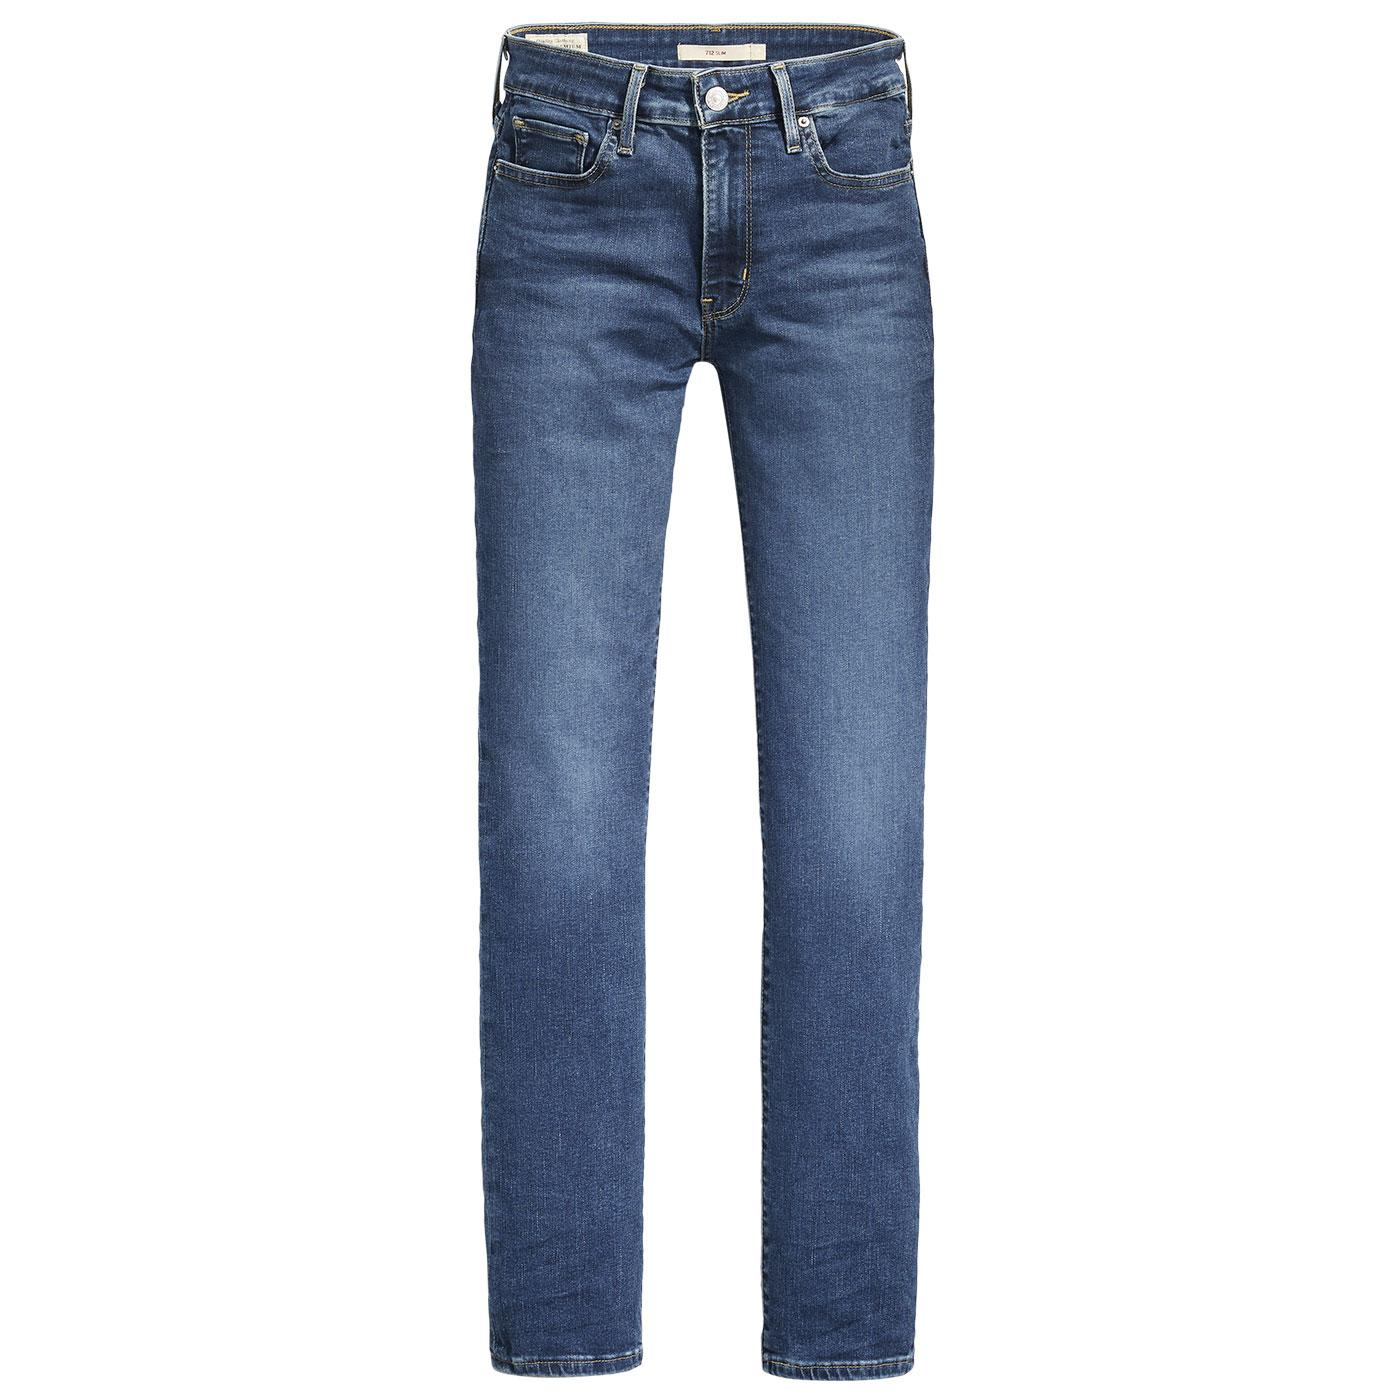 LEVI'S Women's 712 Slim Jeans - Paris Cheers